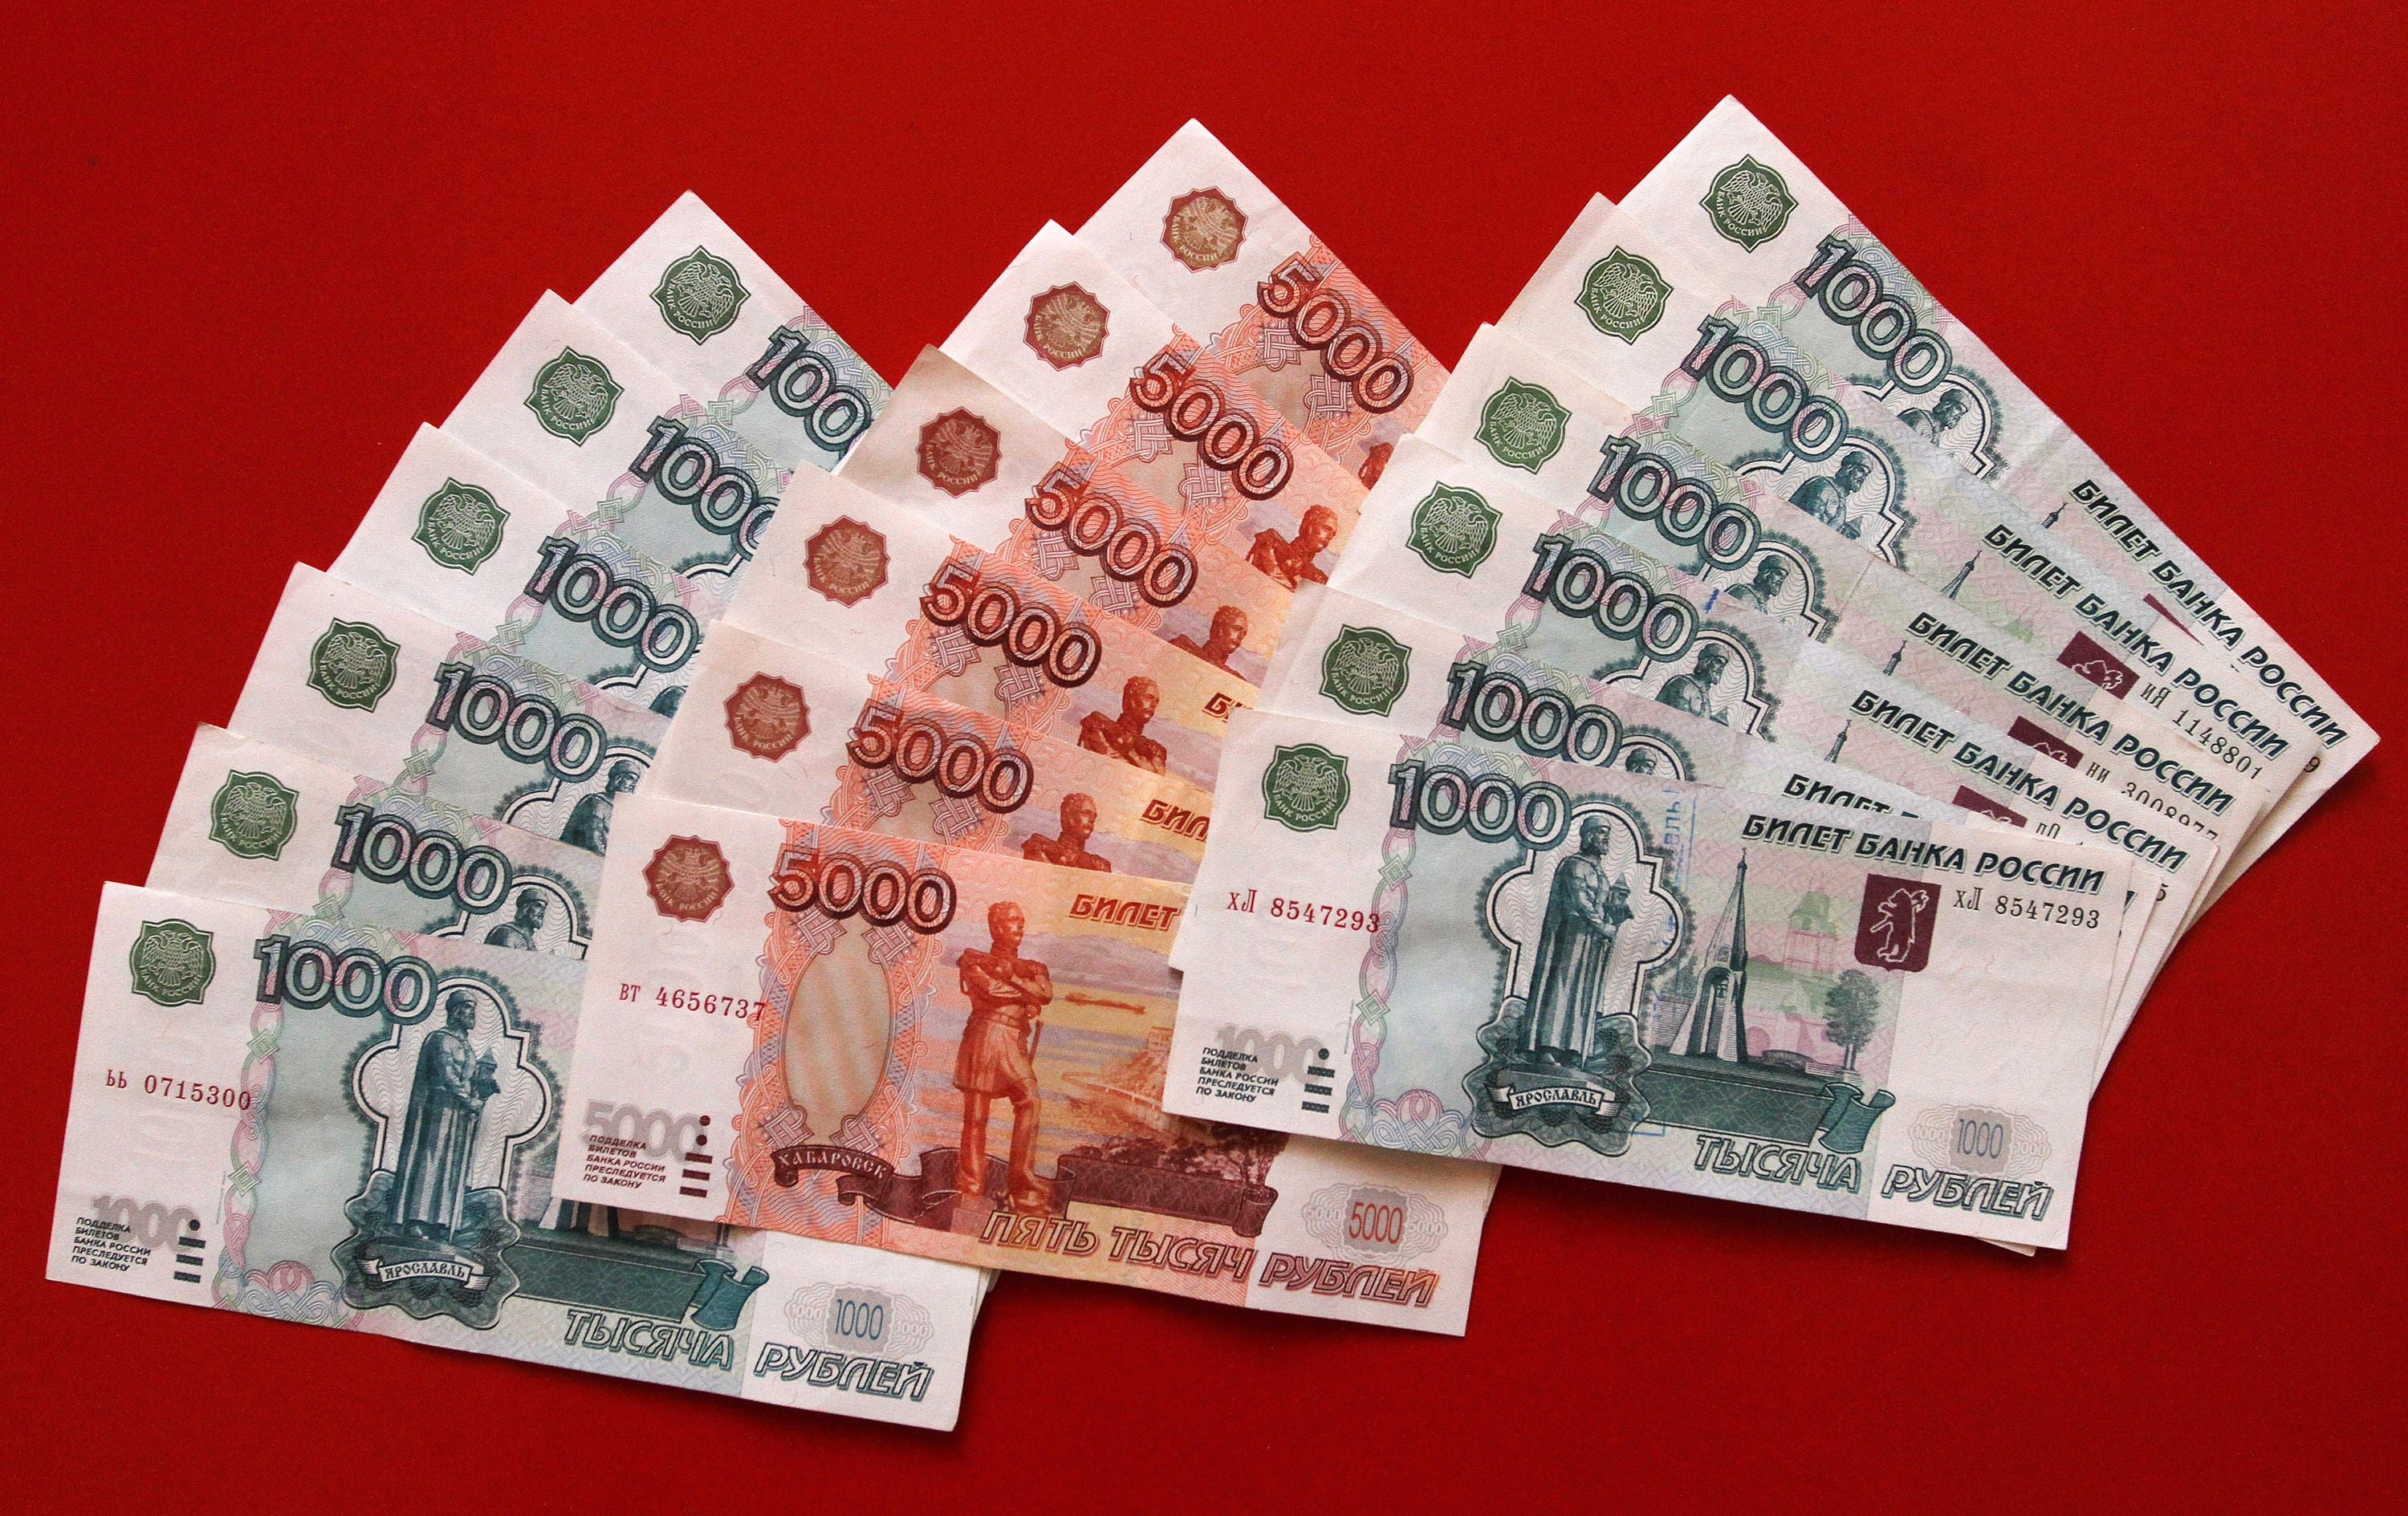 What is the most expensive 10 ruble coin in Russia